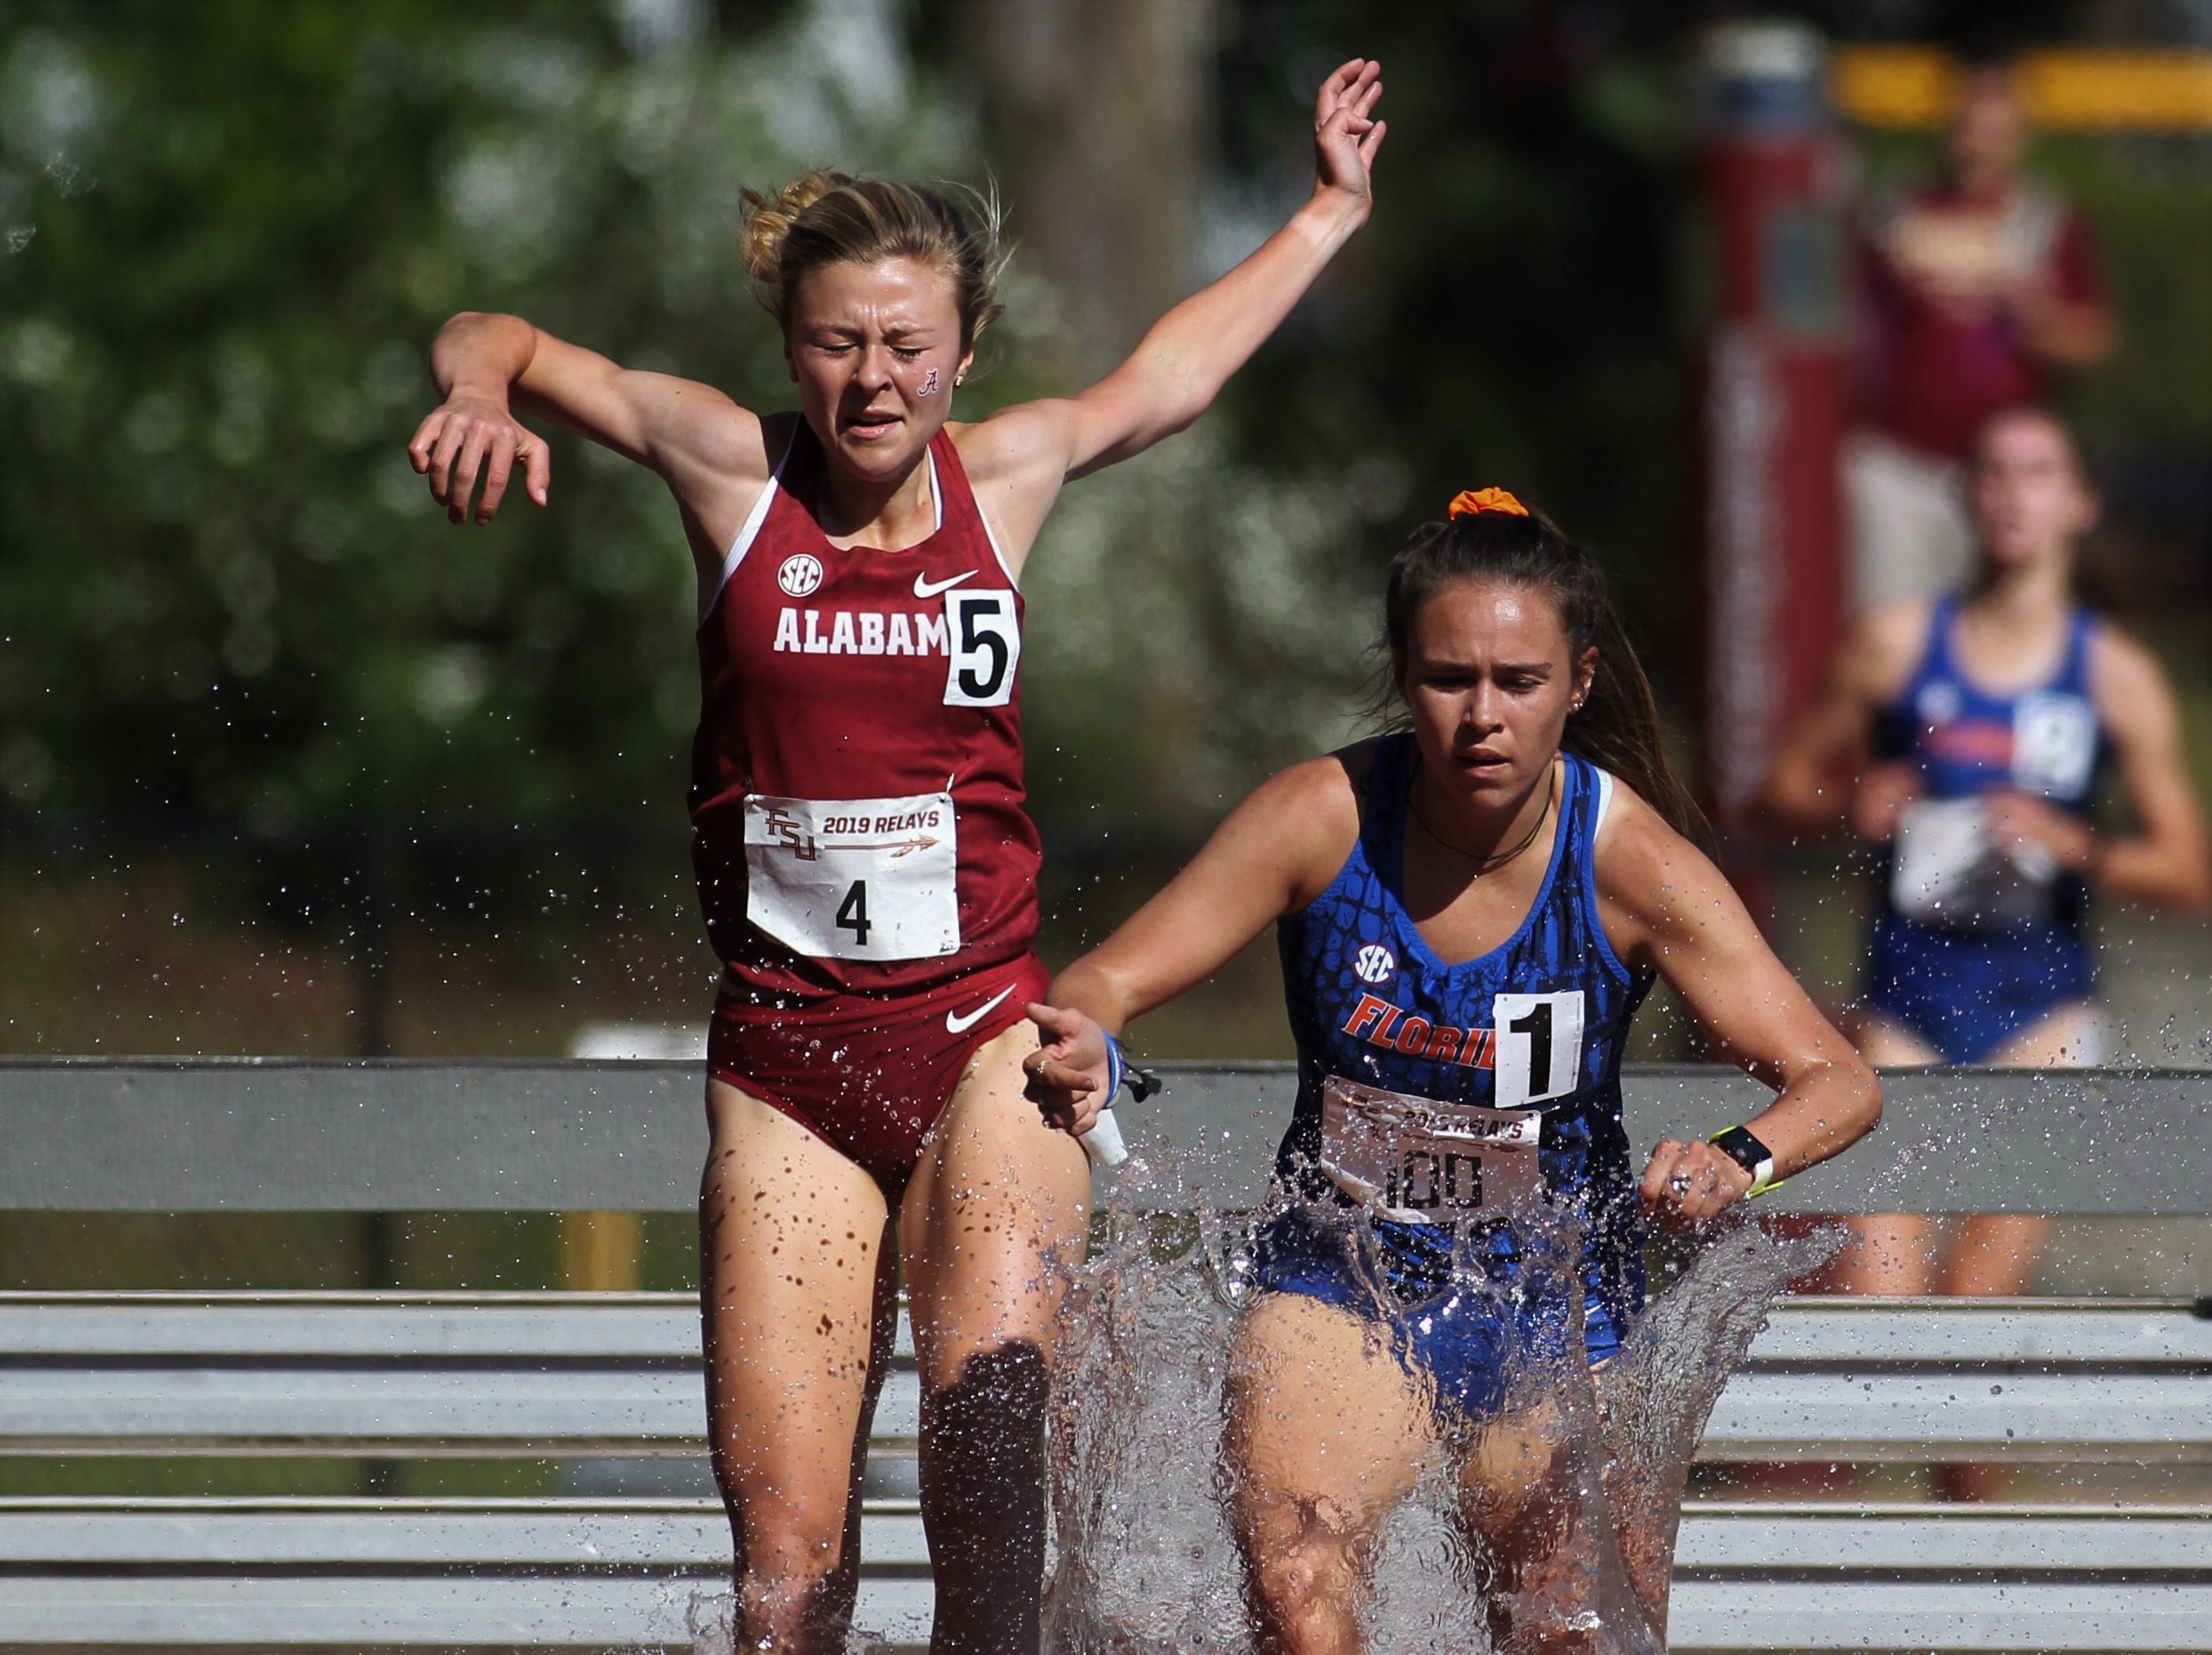 Florida's Caitlin McQuilkin leads Albama's Caroline Brooks into the water of the 2000-meter steeplechase during Friday's college portion of the FSU Relays at Mike Long Track on March 22, 2019.